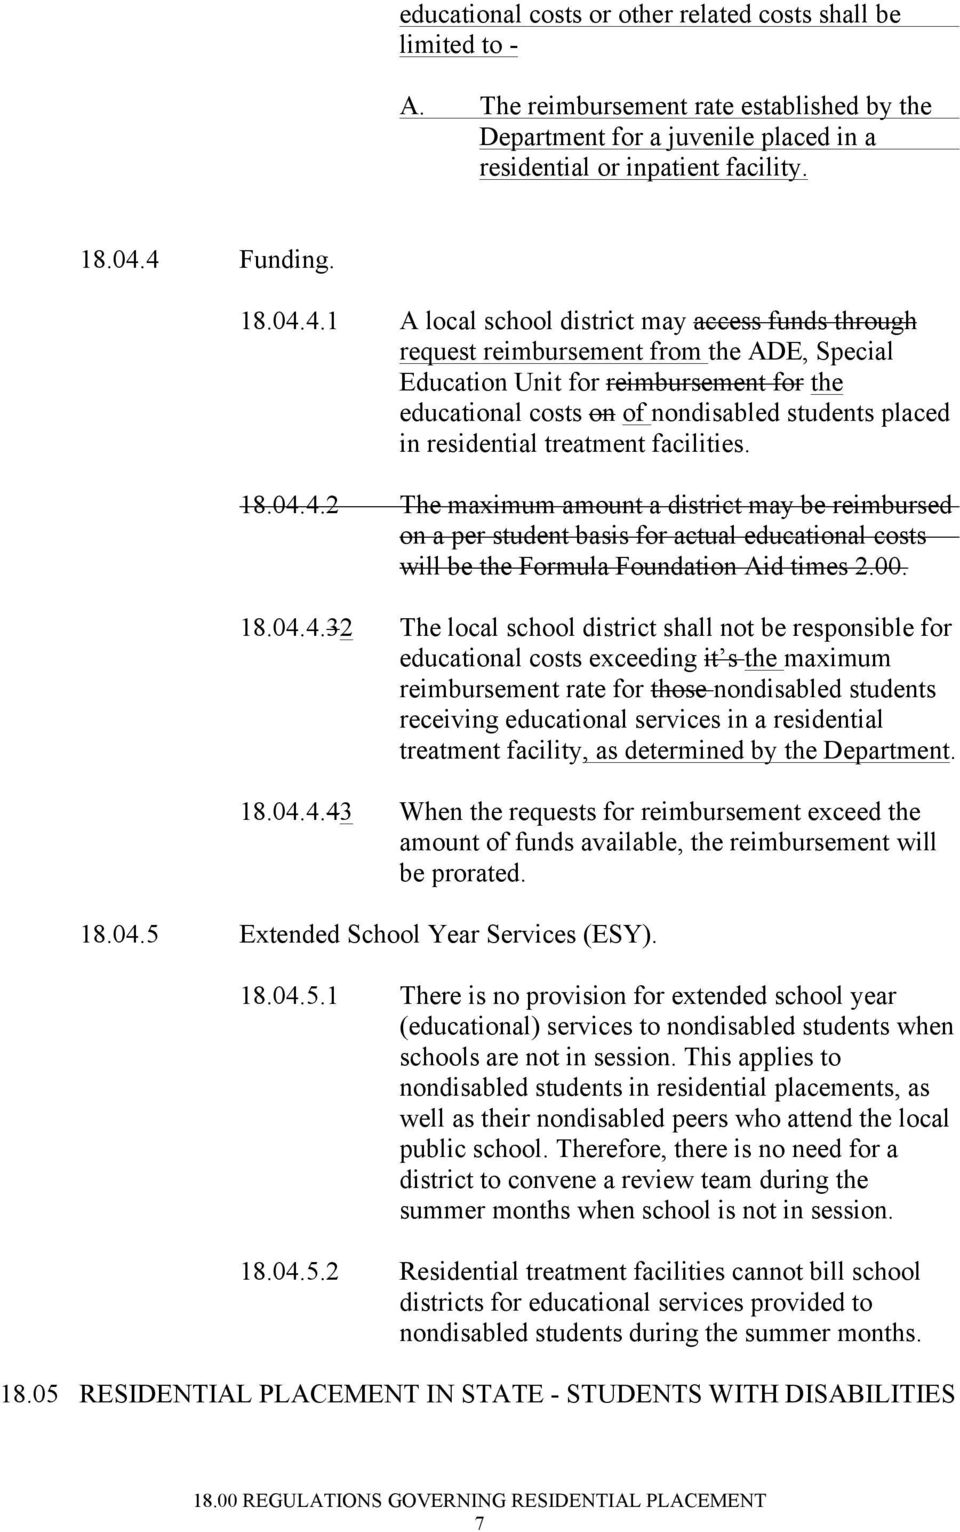 4.1 A local school district may access funds through request reimbursement from the ADE, Special Education Unit for reimbursement for the educational costs on of nondisabled students placed in